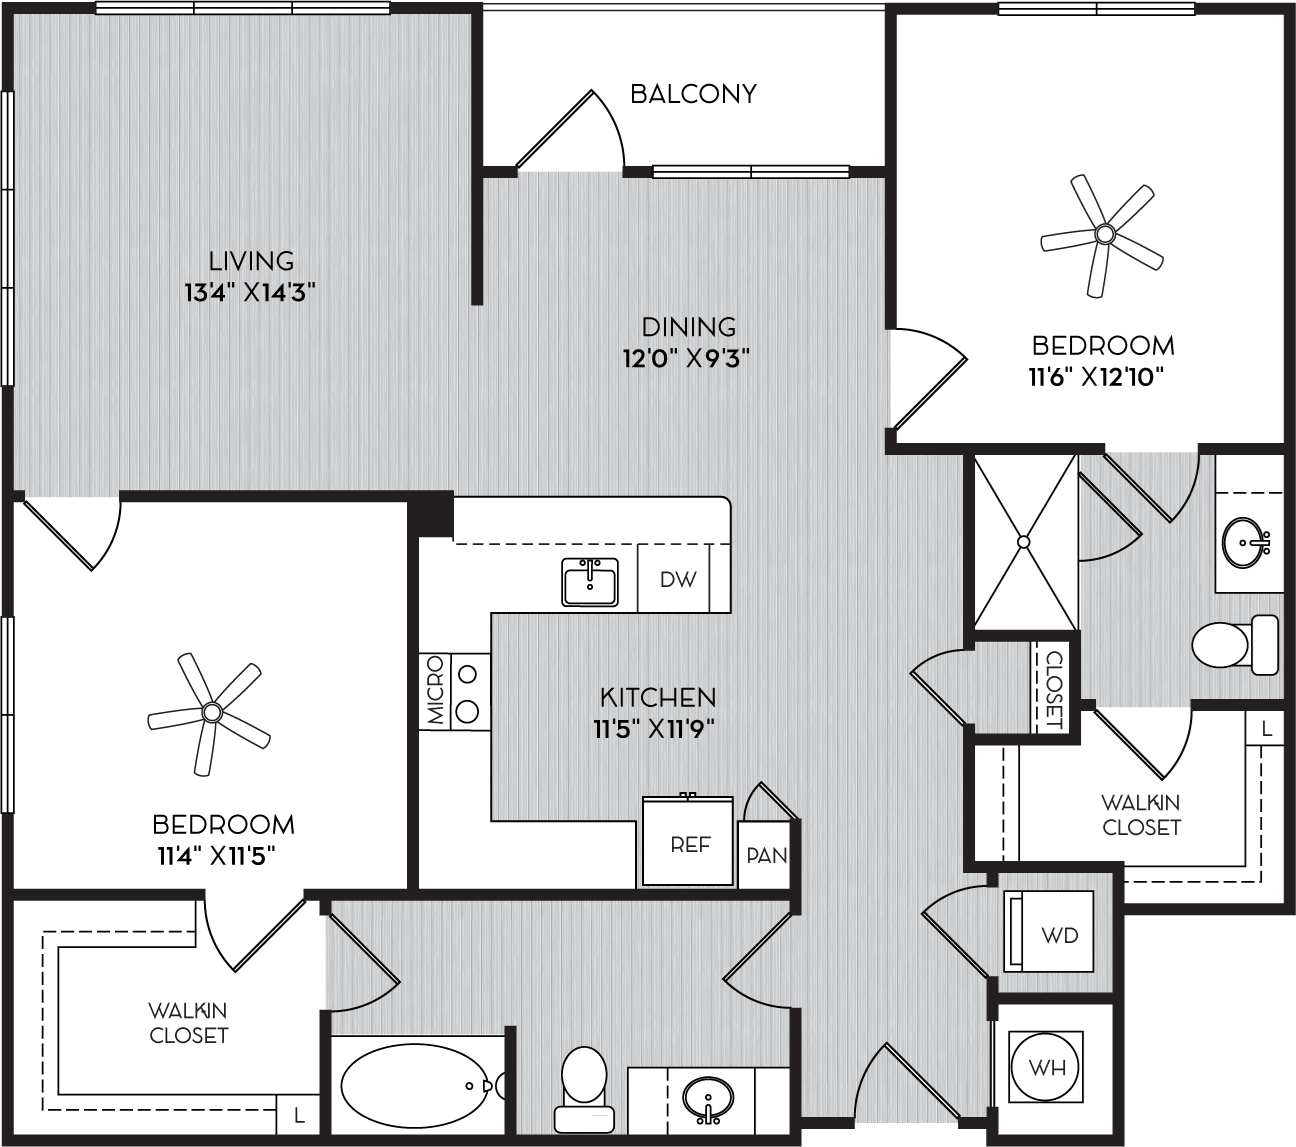 B2b Two Bedroom Floor Plan with Balcony at Apartments in Vinings